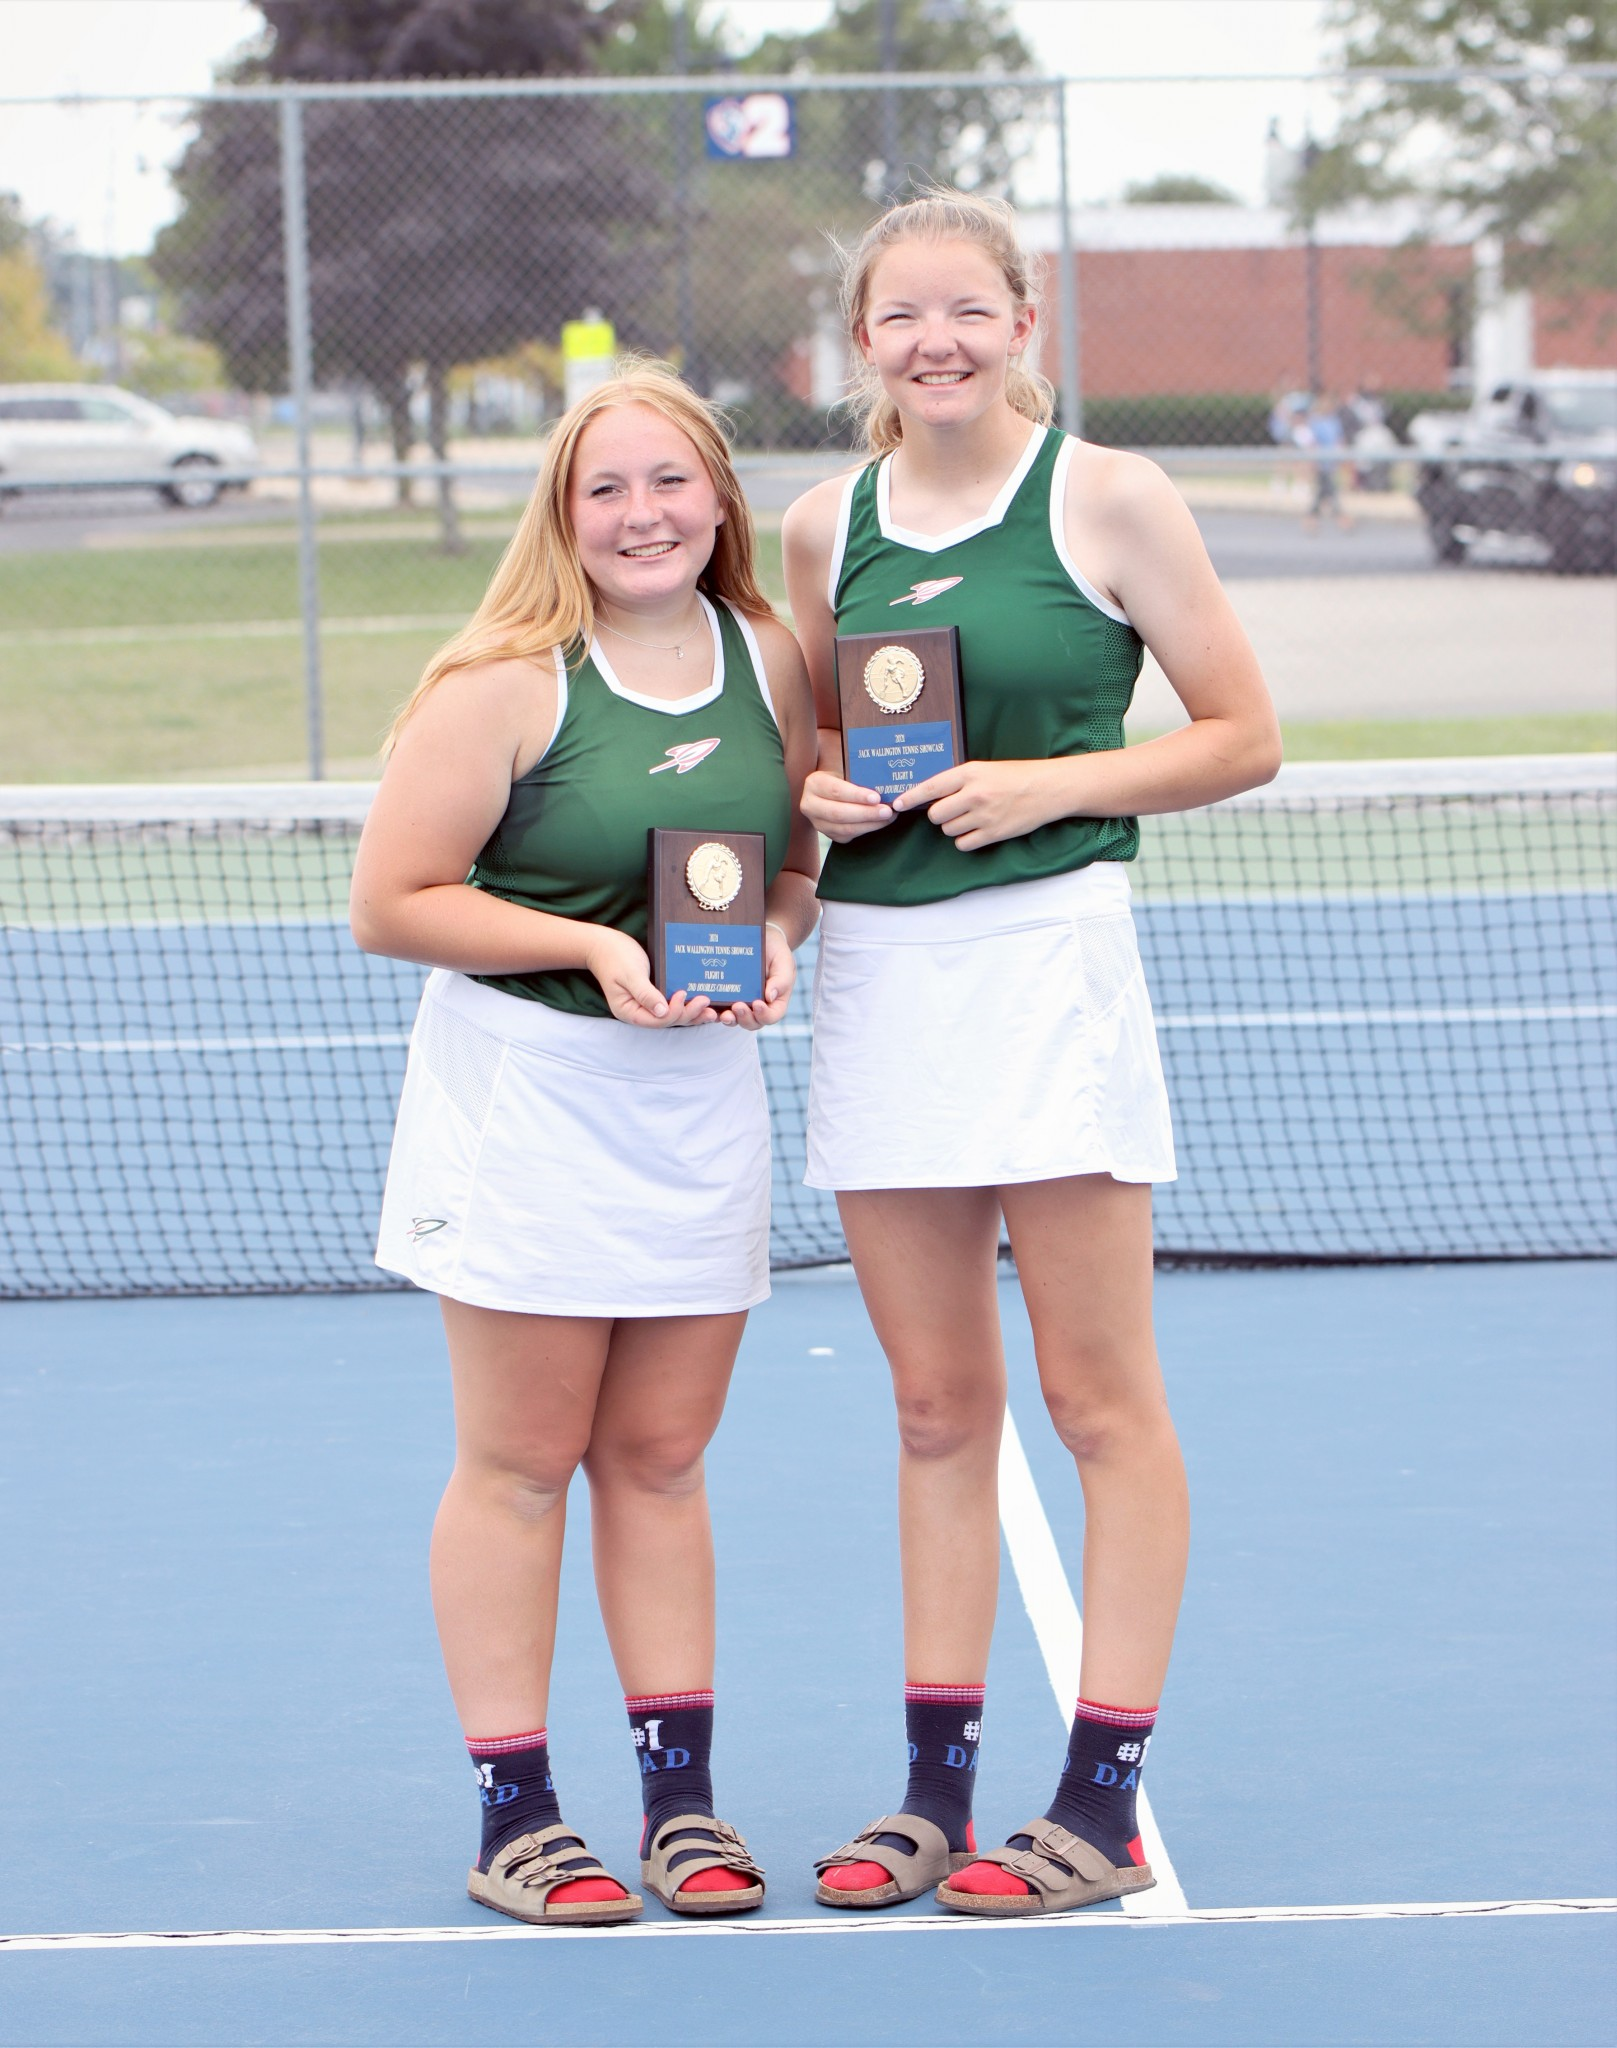 Oak Harbor tennis players Jesse Bolander and Emma Hand. (Photo by Laura Bolander)